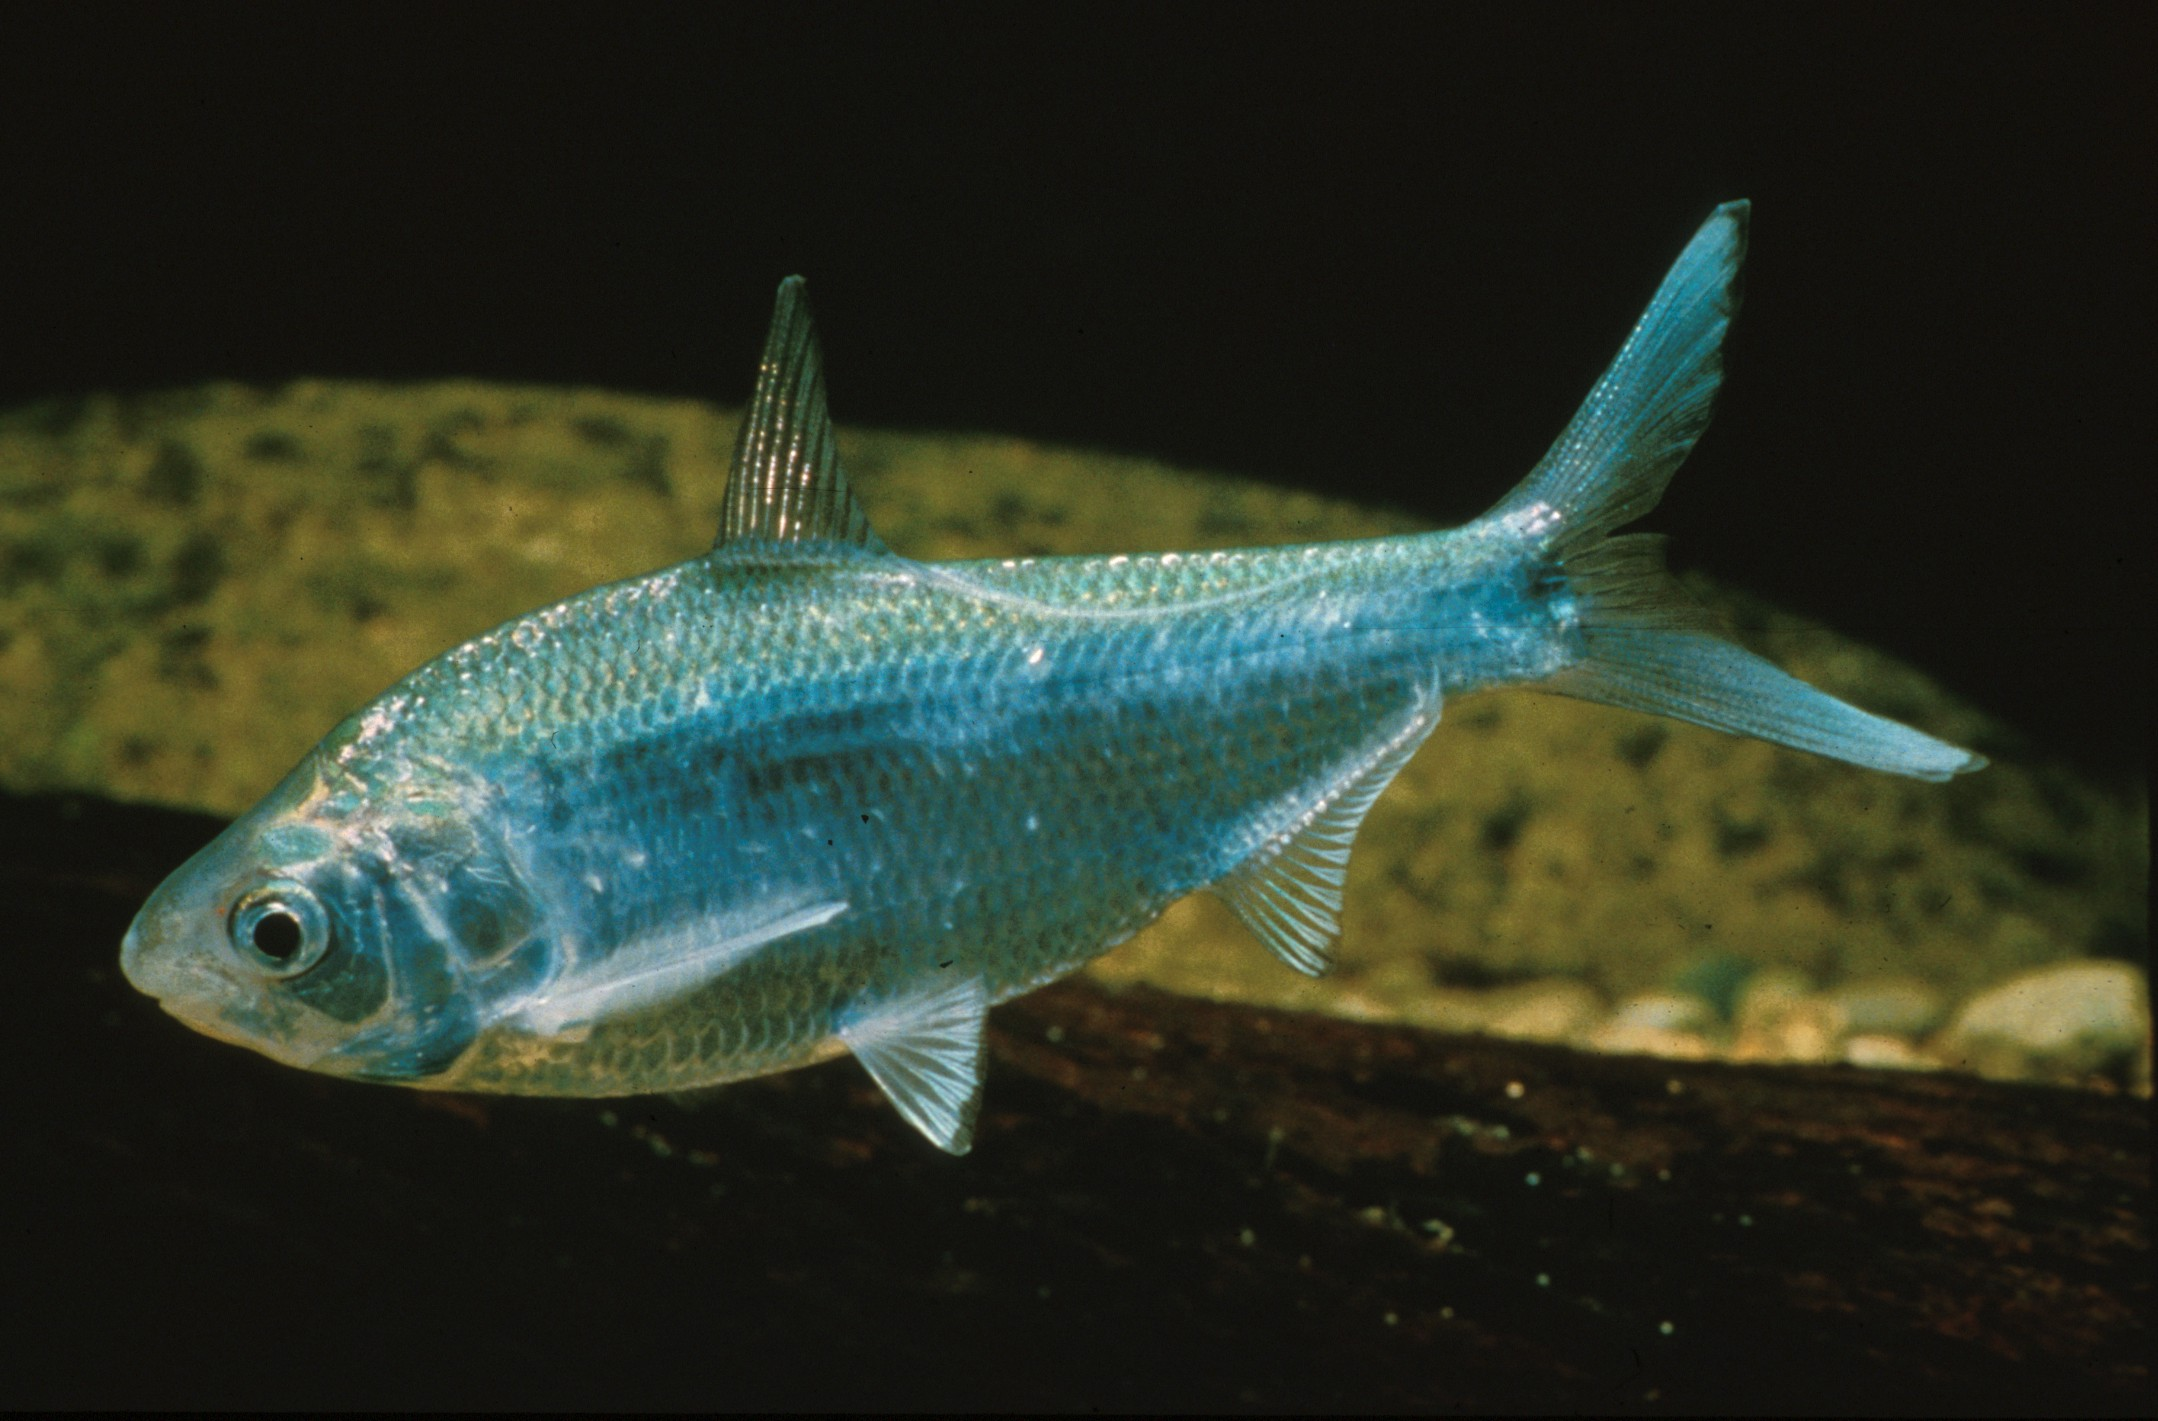 Nematolosa erebi (Bony Bream)